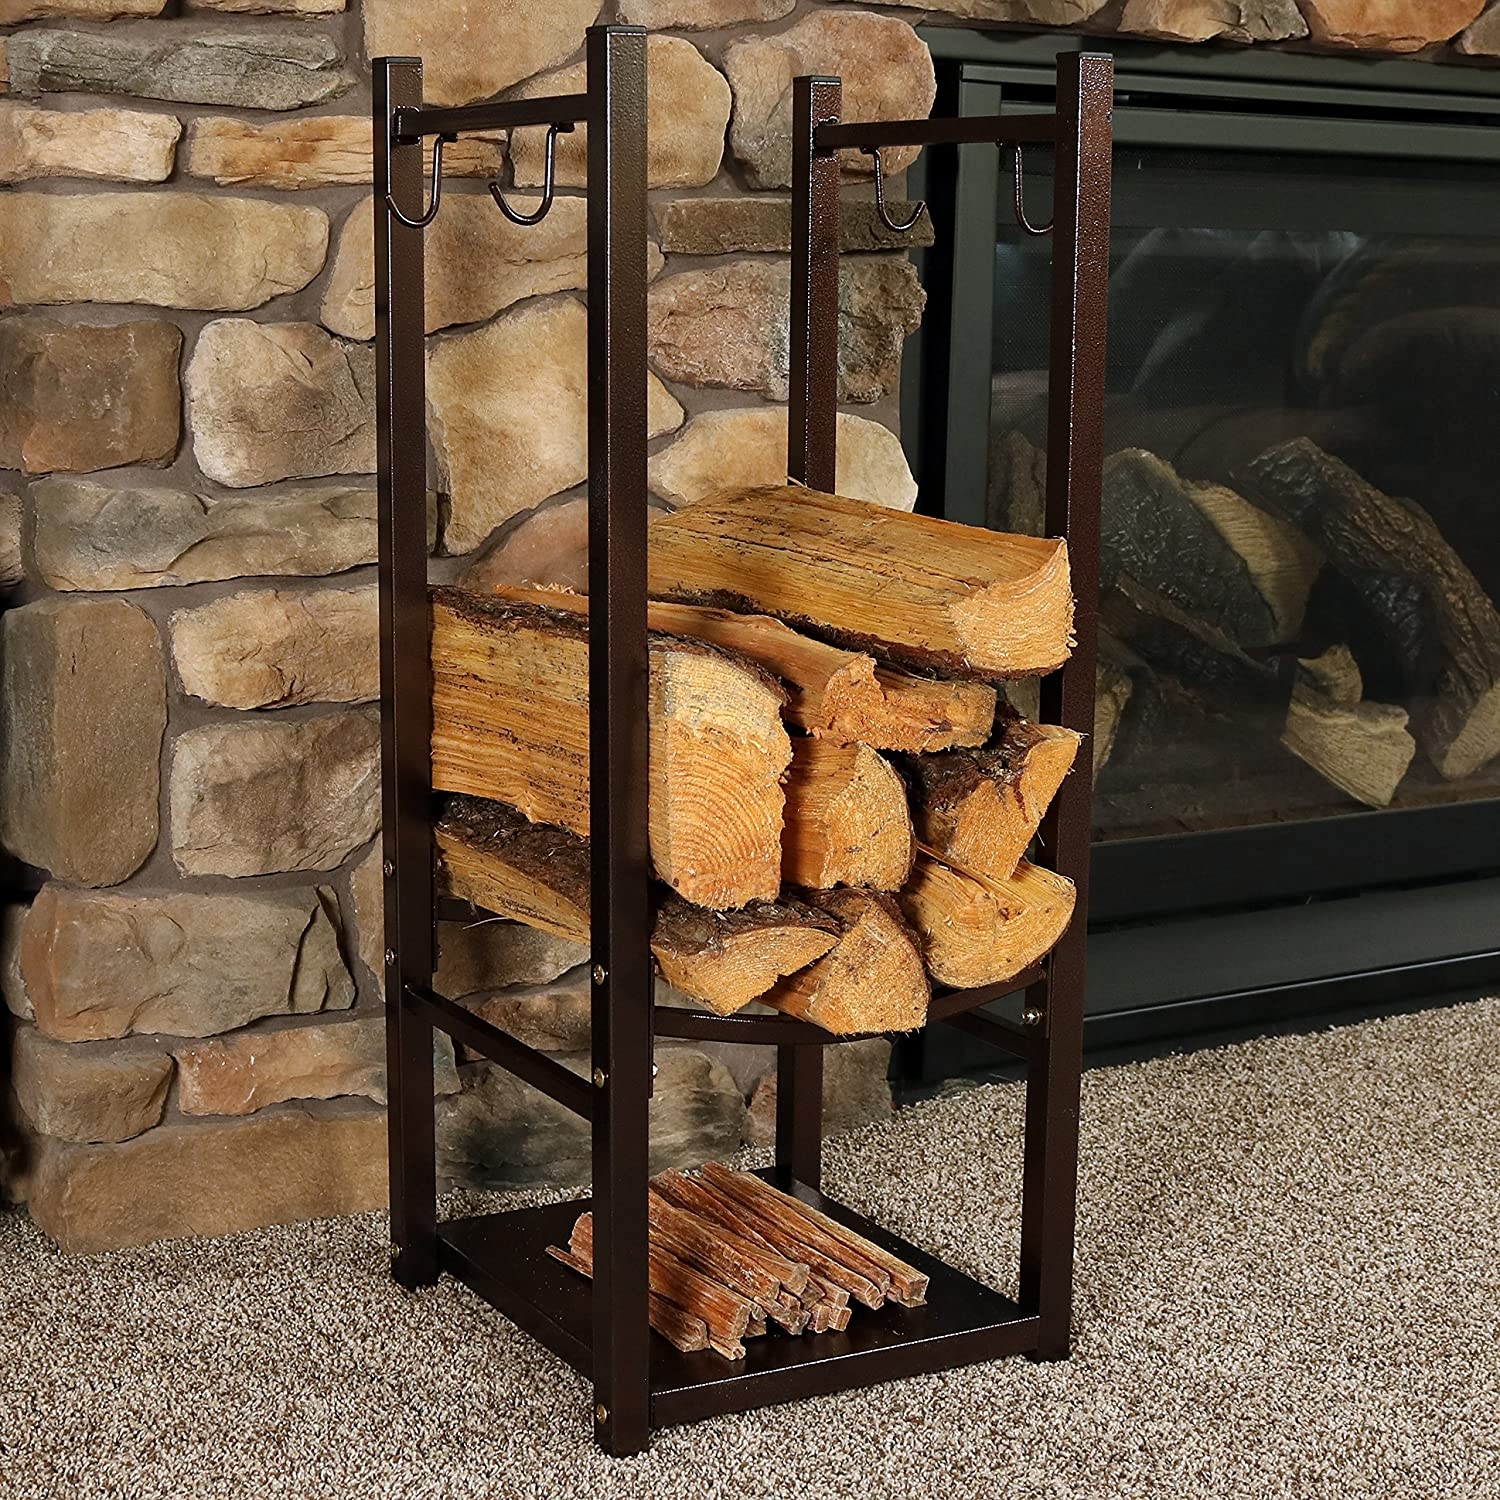 Amazoncom Sunnydaze Firewood Log Rack With Tool Holders, Indoor Or